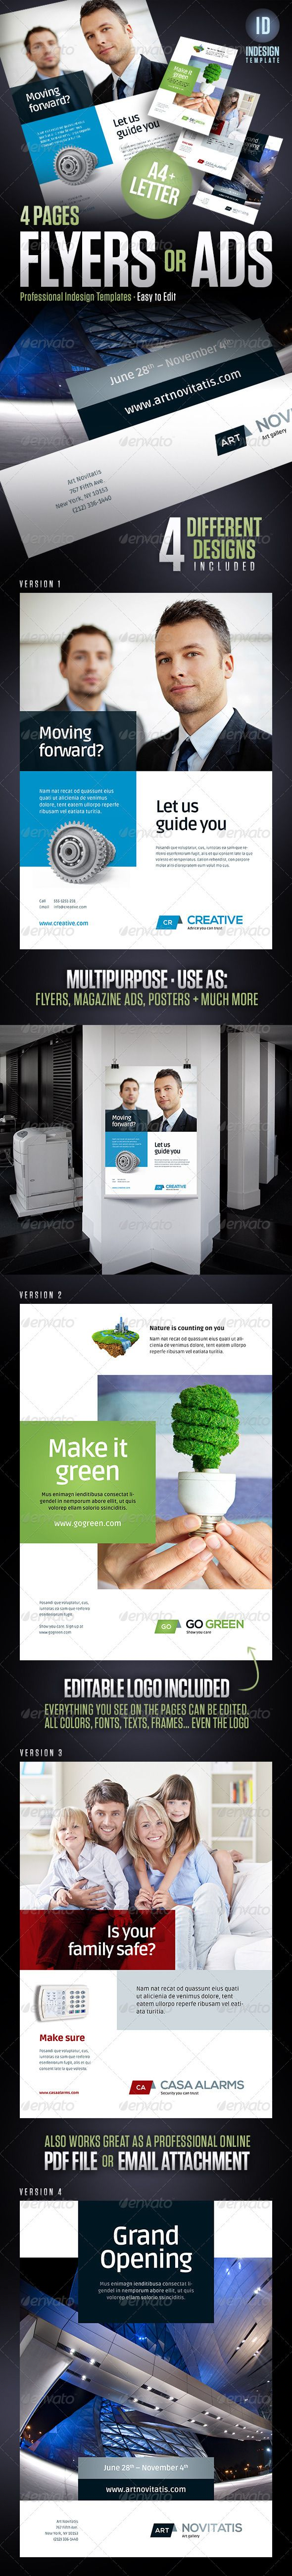 Flyers Magazine Ads Posters Product Sheets Flyer Magazine Ads Flyer Design Templates